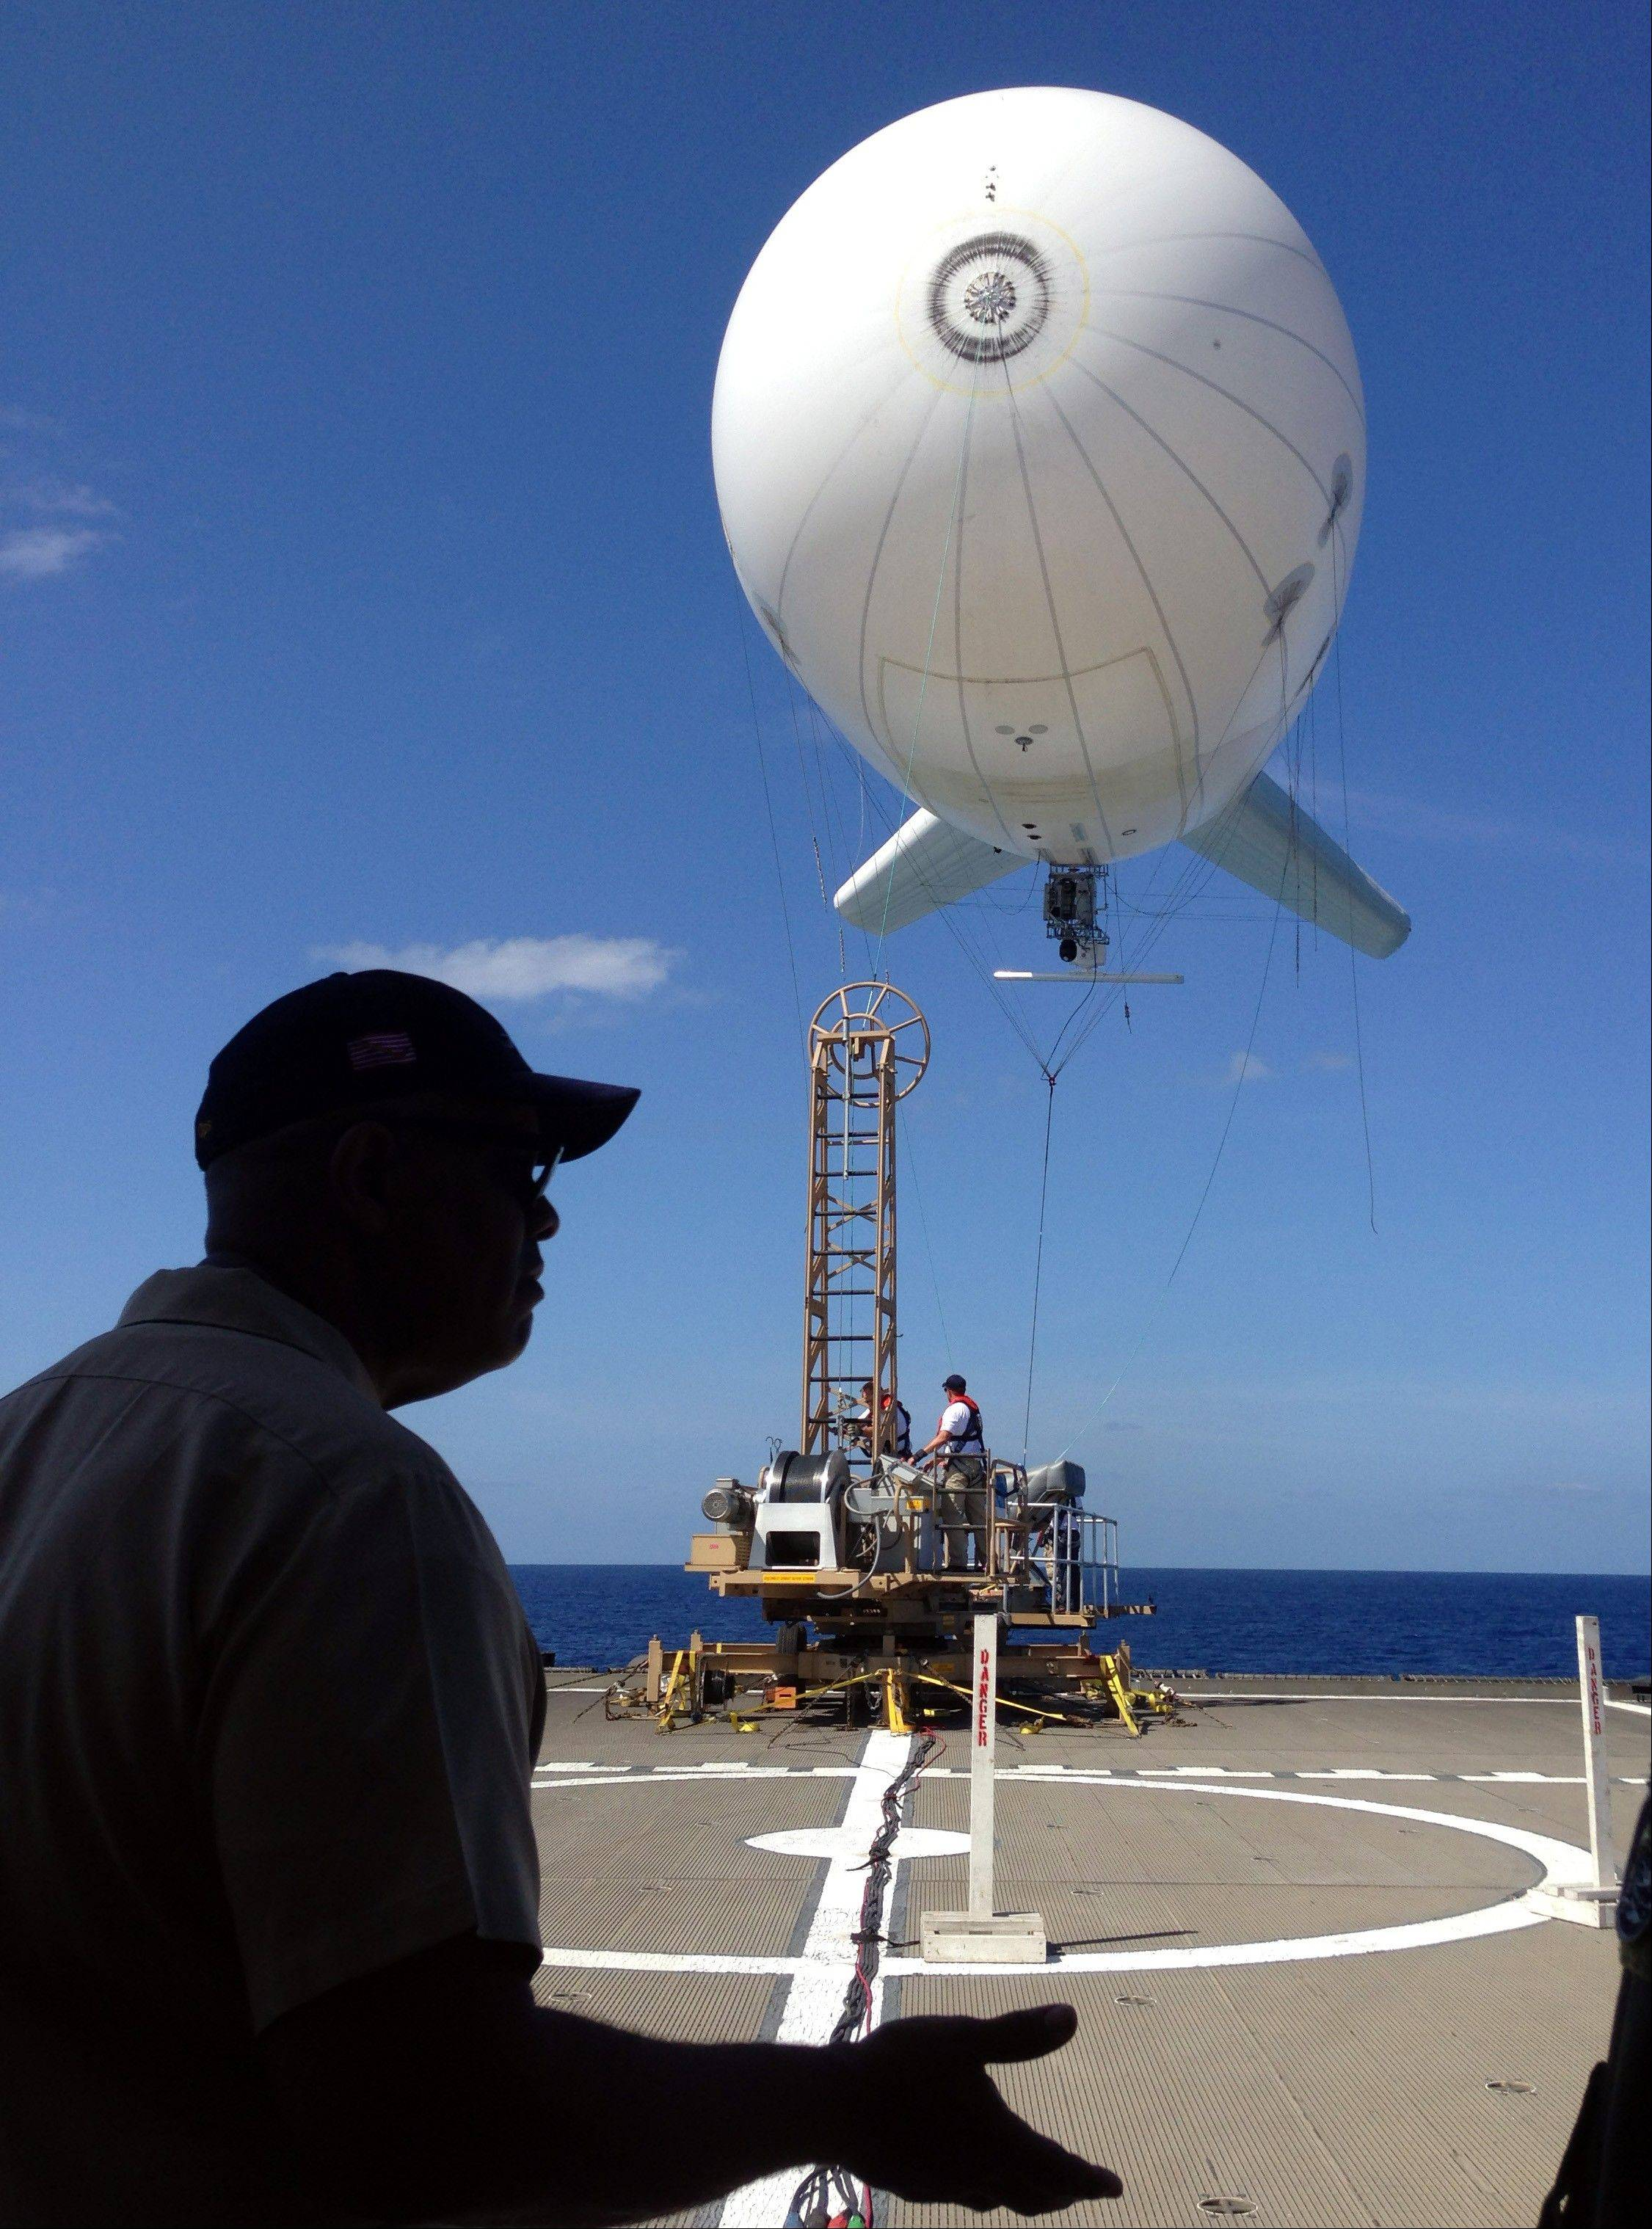 U.S. Navy Rear Admiral Sinclair Harris looks at a balloon-like craft Friday known as an aerostat that is attached to the back of his high speed vessel Swift docked in Key West, Florida.